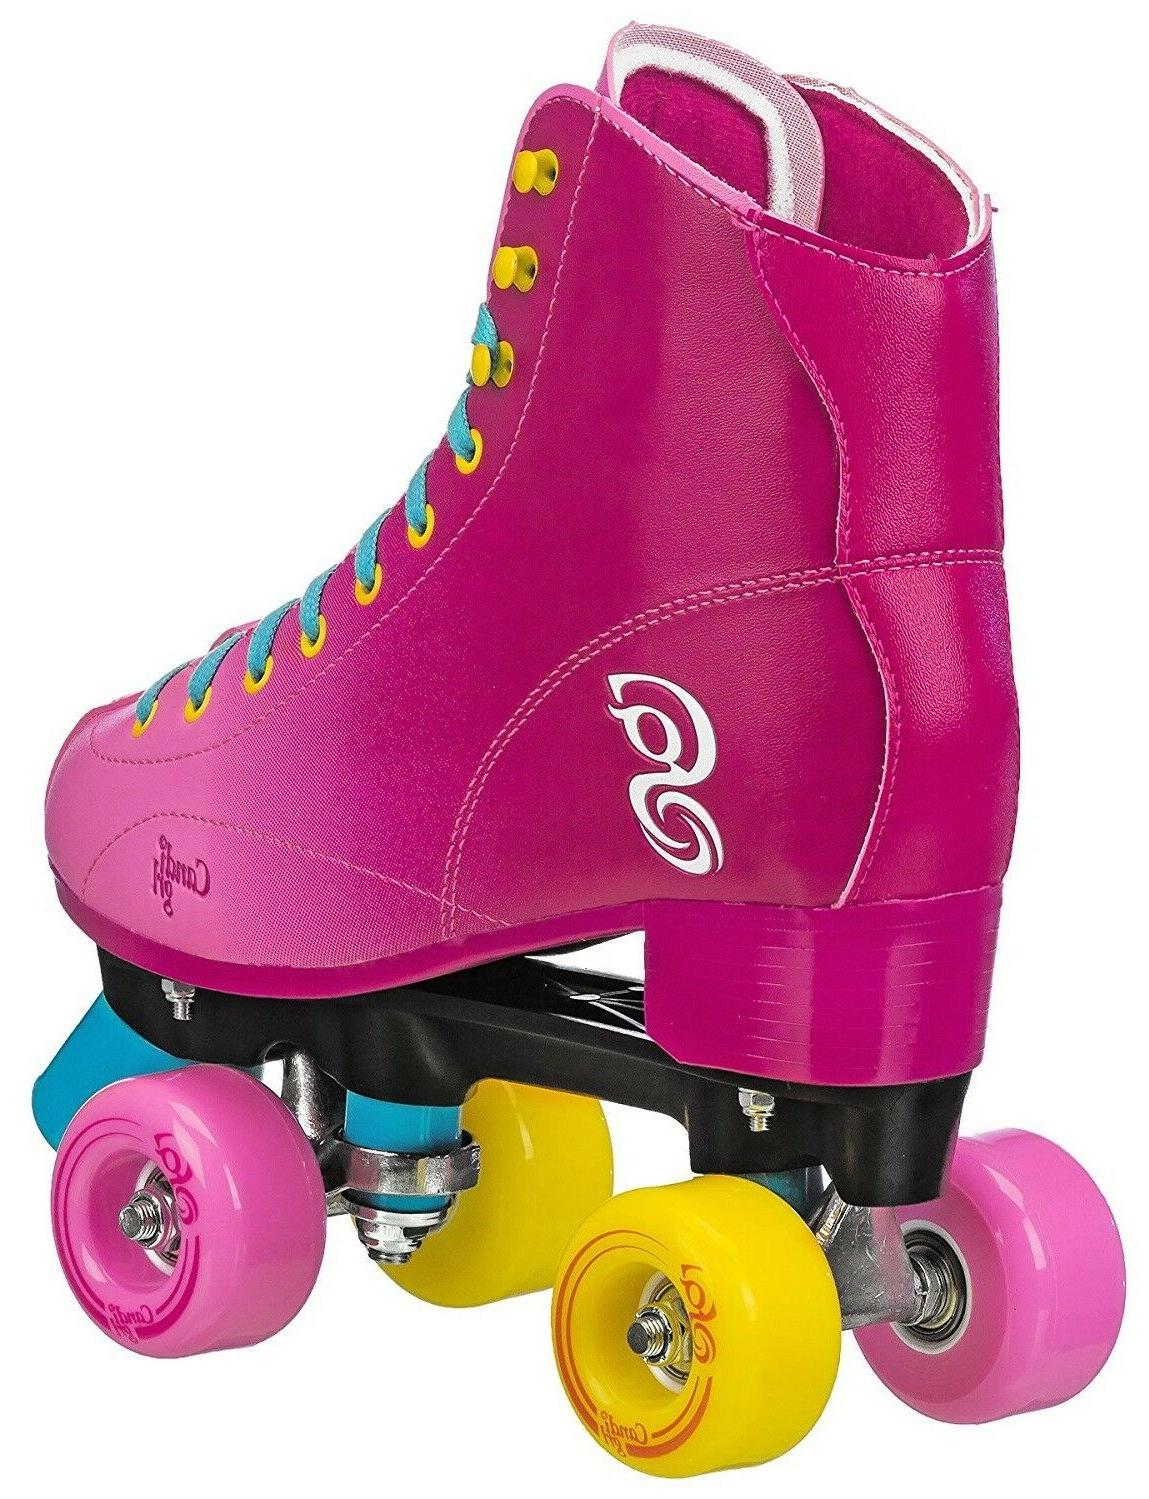 Candi Girl Sabina Outdoor Complete Skates Girls Ladies 5-10